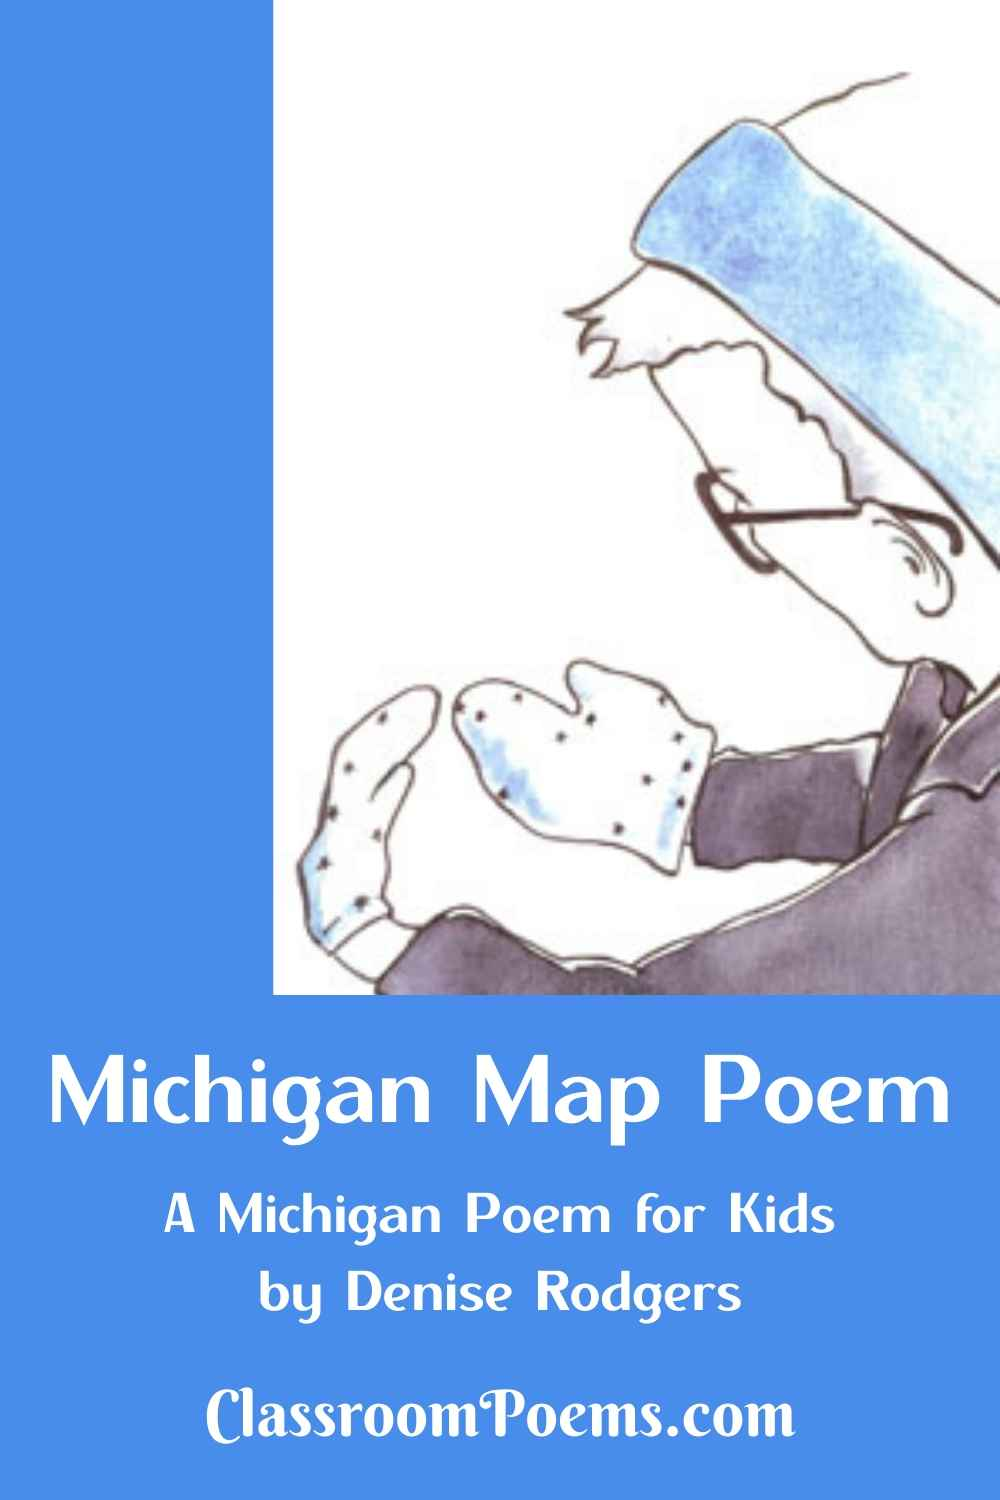 Boy with mittens. MICHIGAN MAP POEM by Denise Rodgers on ClassroomPoems.com.